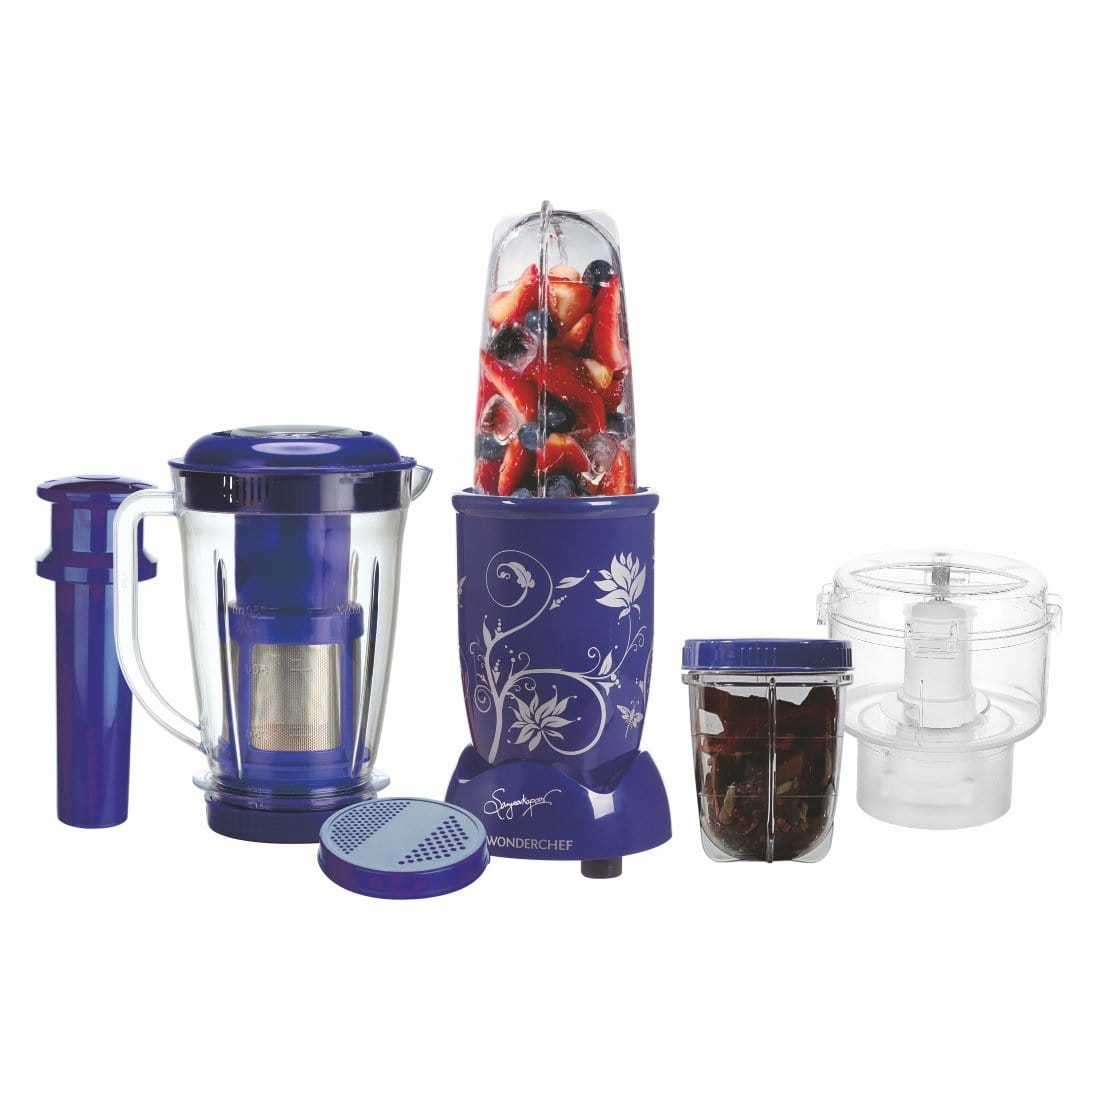 Nutri-blend Complete Kitchen Machine (CKM) - (Mixer, Grinder, Juicer, And Chopper), 400W-Blue